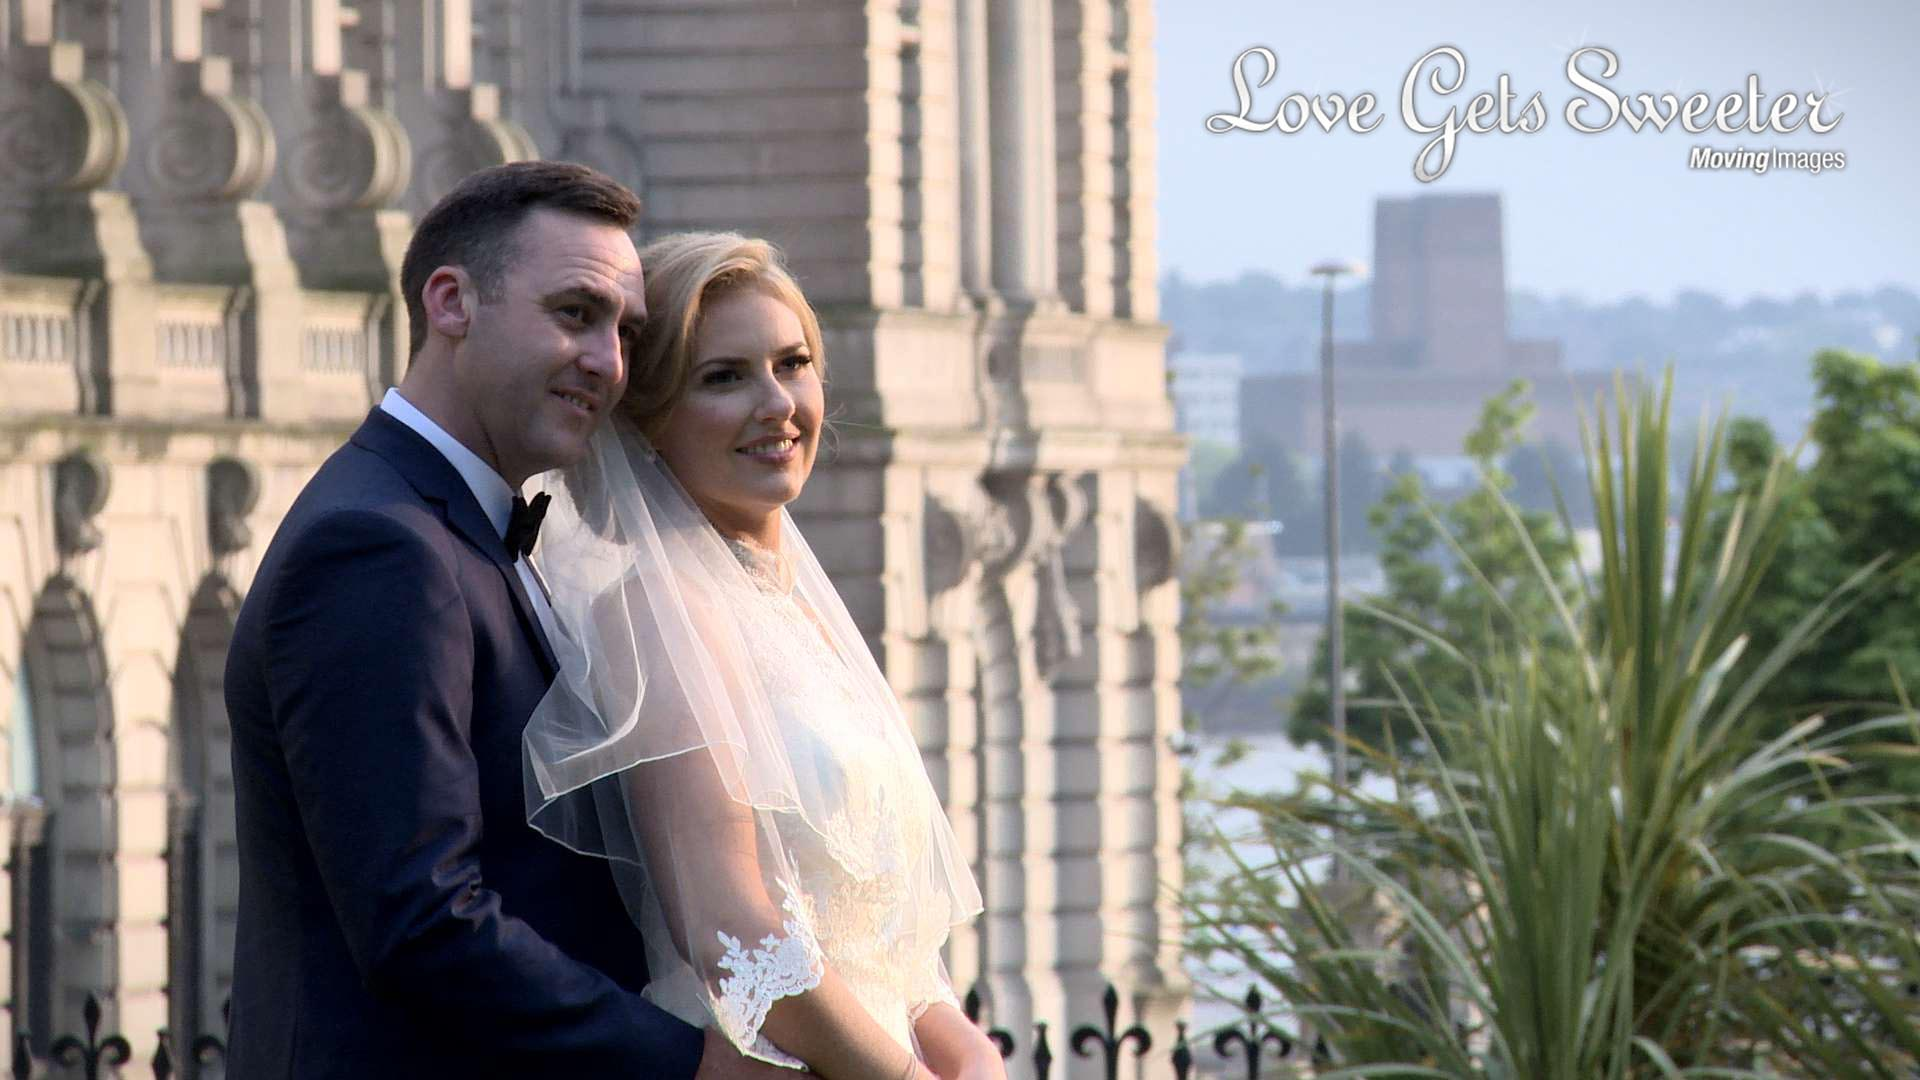 Bride and Groom posing for photographs in St Anne's Church gardens near the Liver Buildings after their wedding ceremony